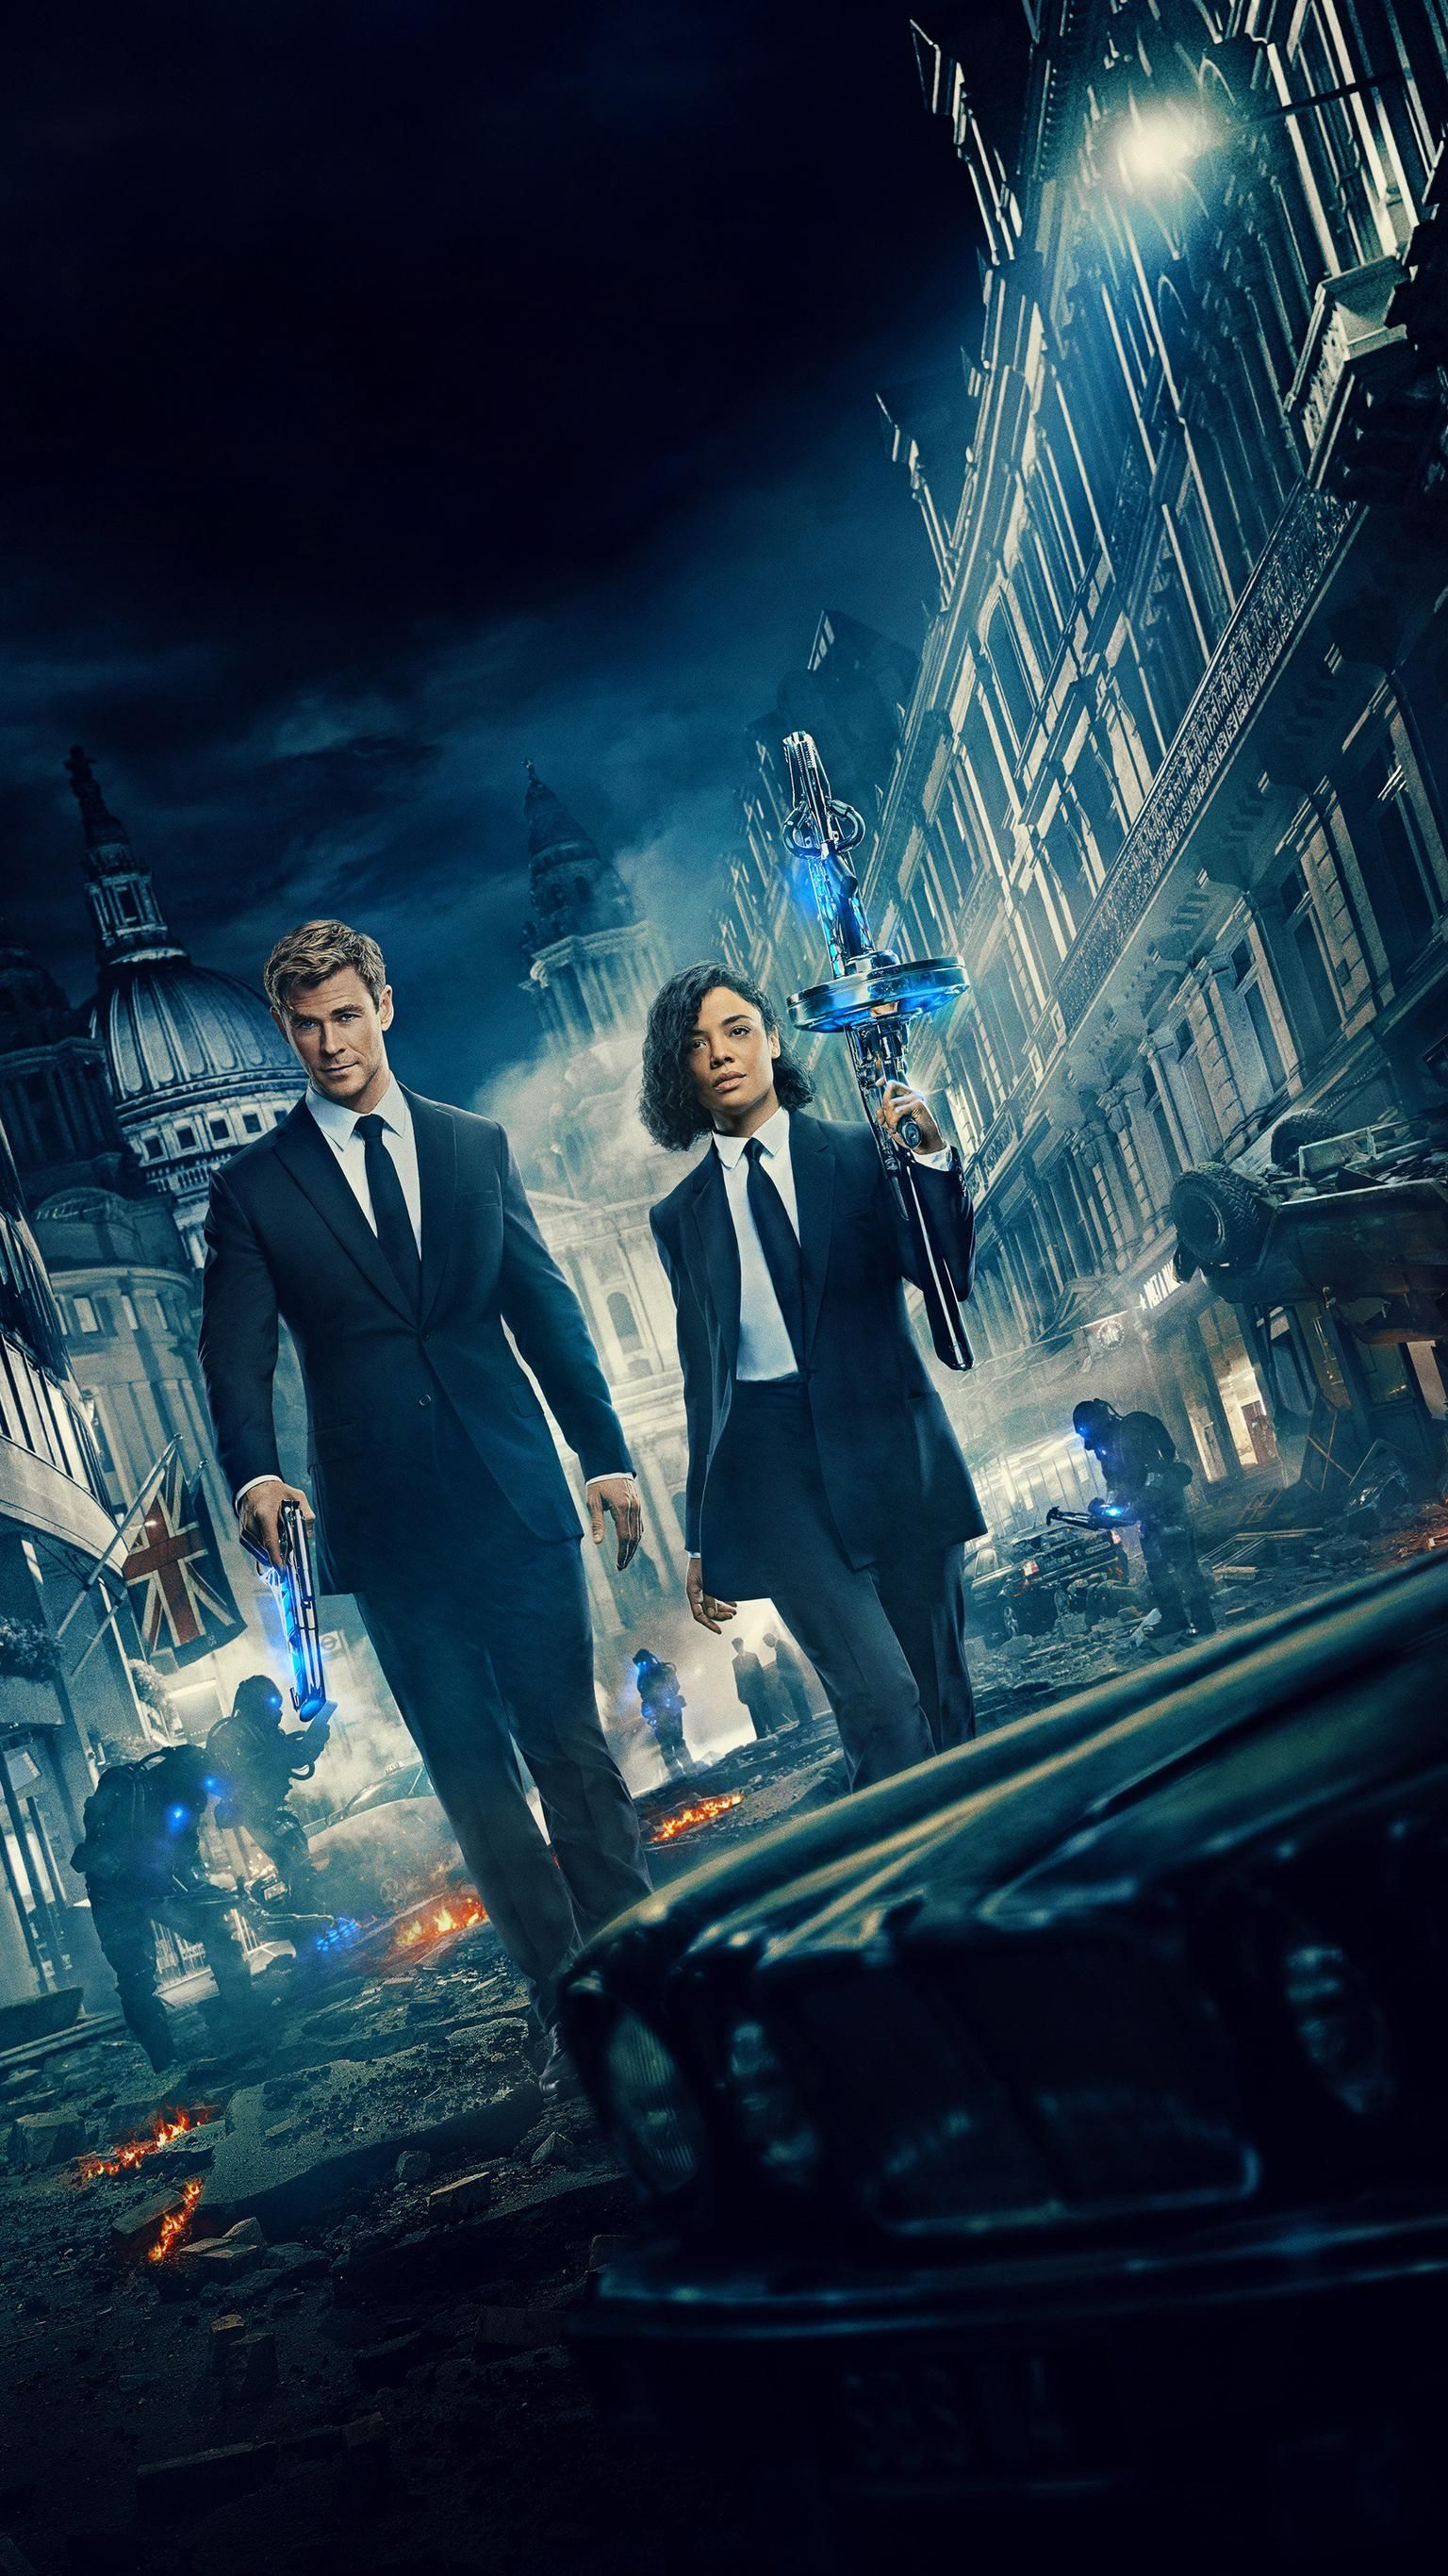 Pin On Men In Black International 2019 Wallpapers For Phone